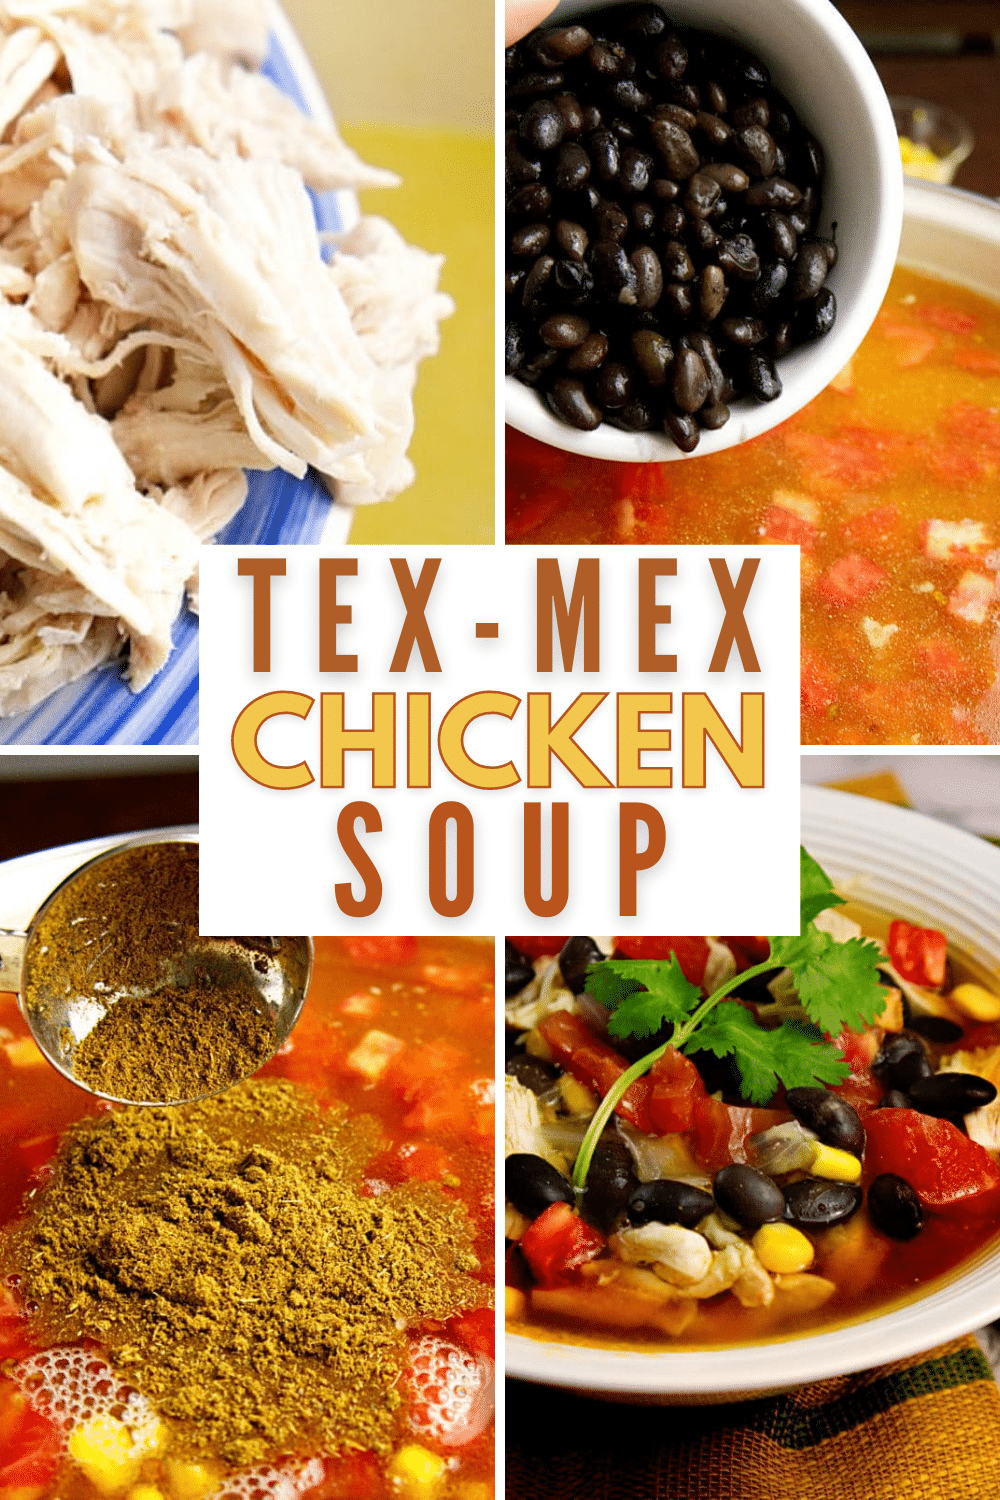 If you like Tex Mex flavors you are going to love this soup! It's full of your favorite flavors that are made even better with a secret ingredient. #texmex #soup #recipes via @wondermomwannab